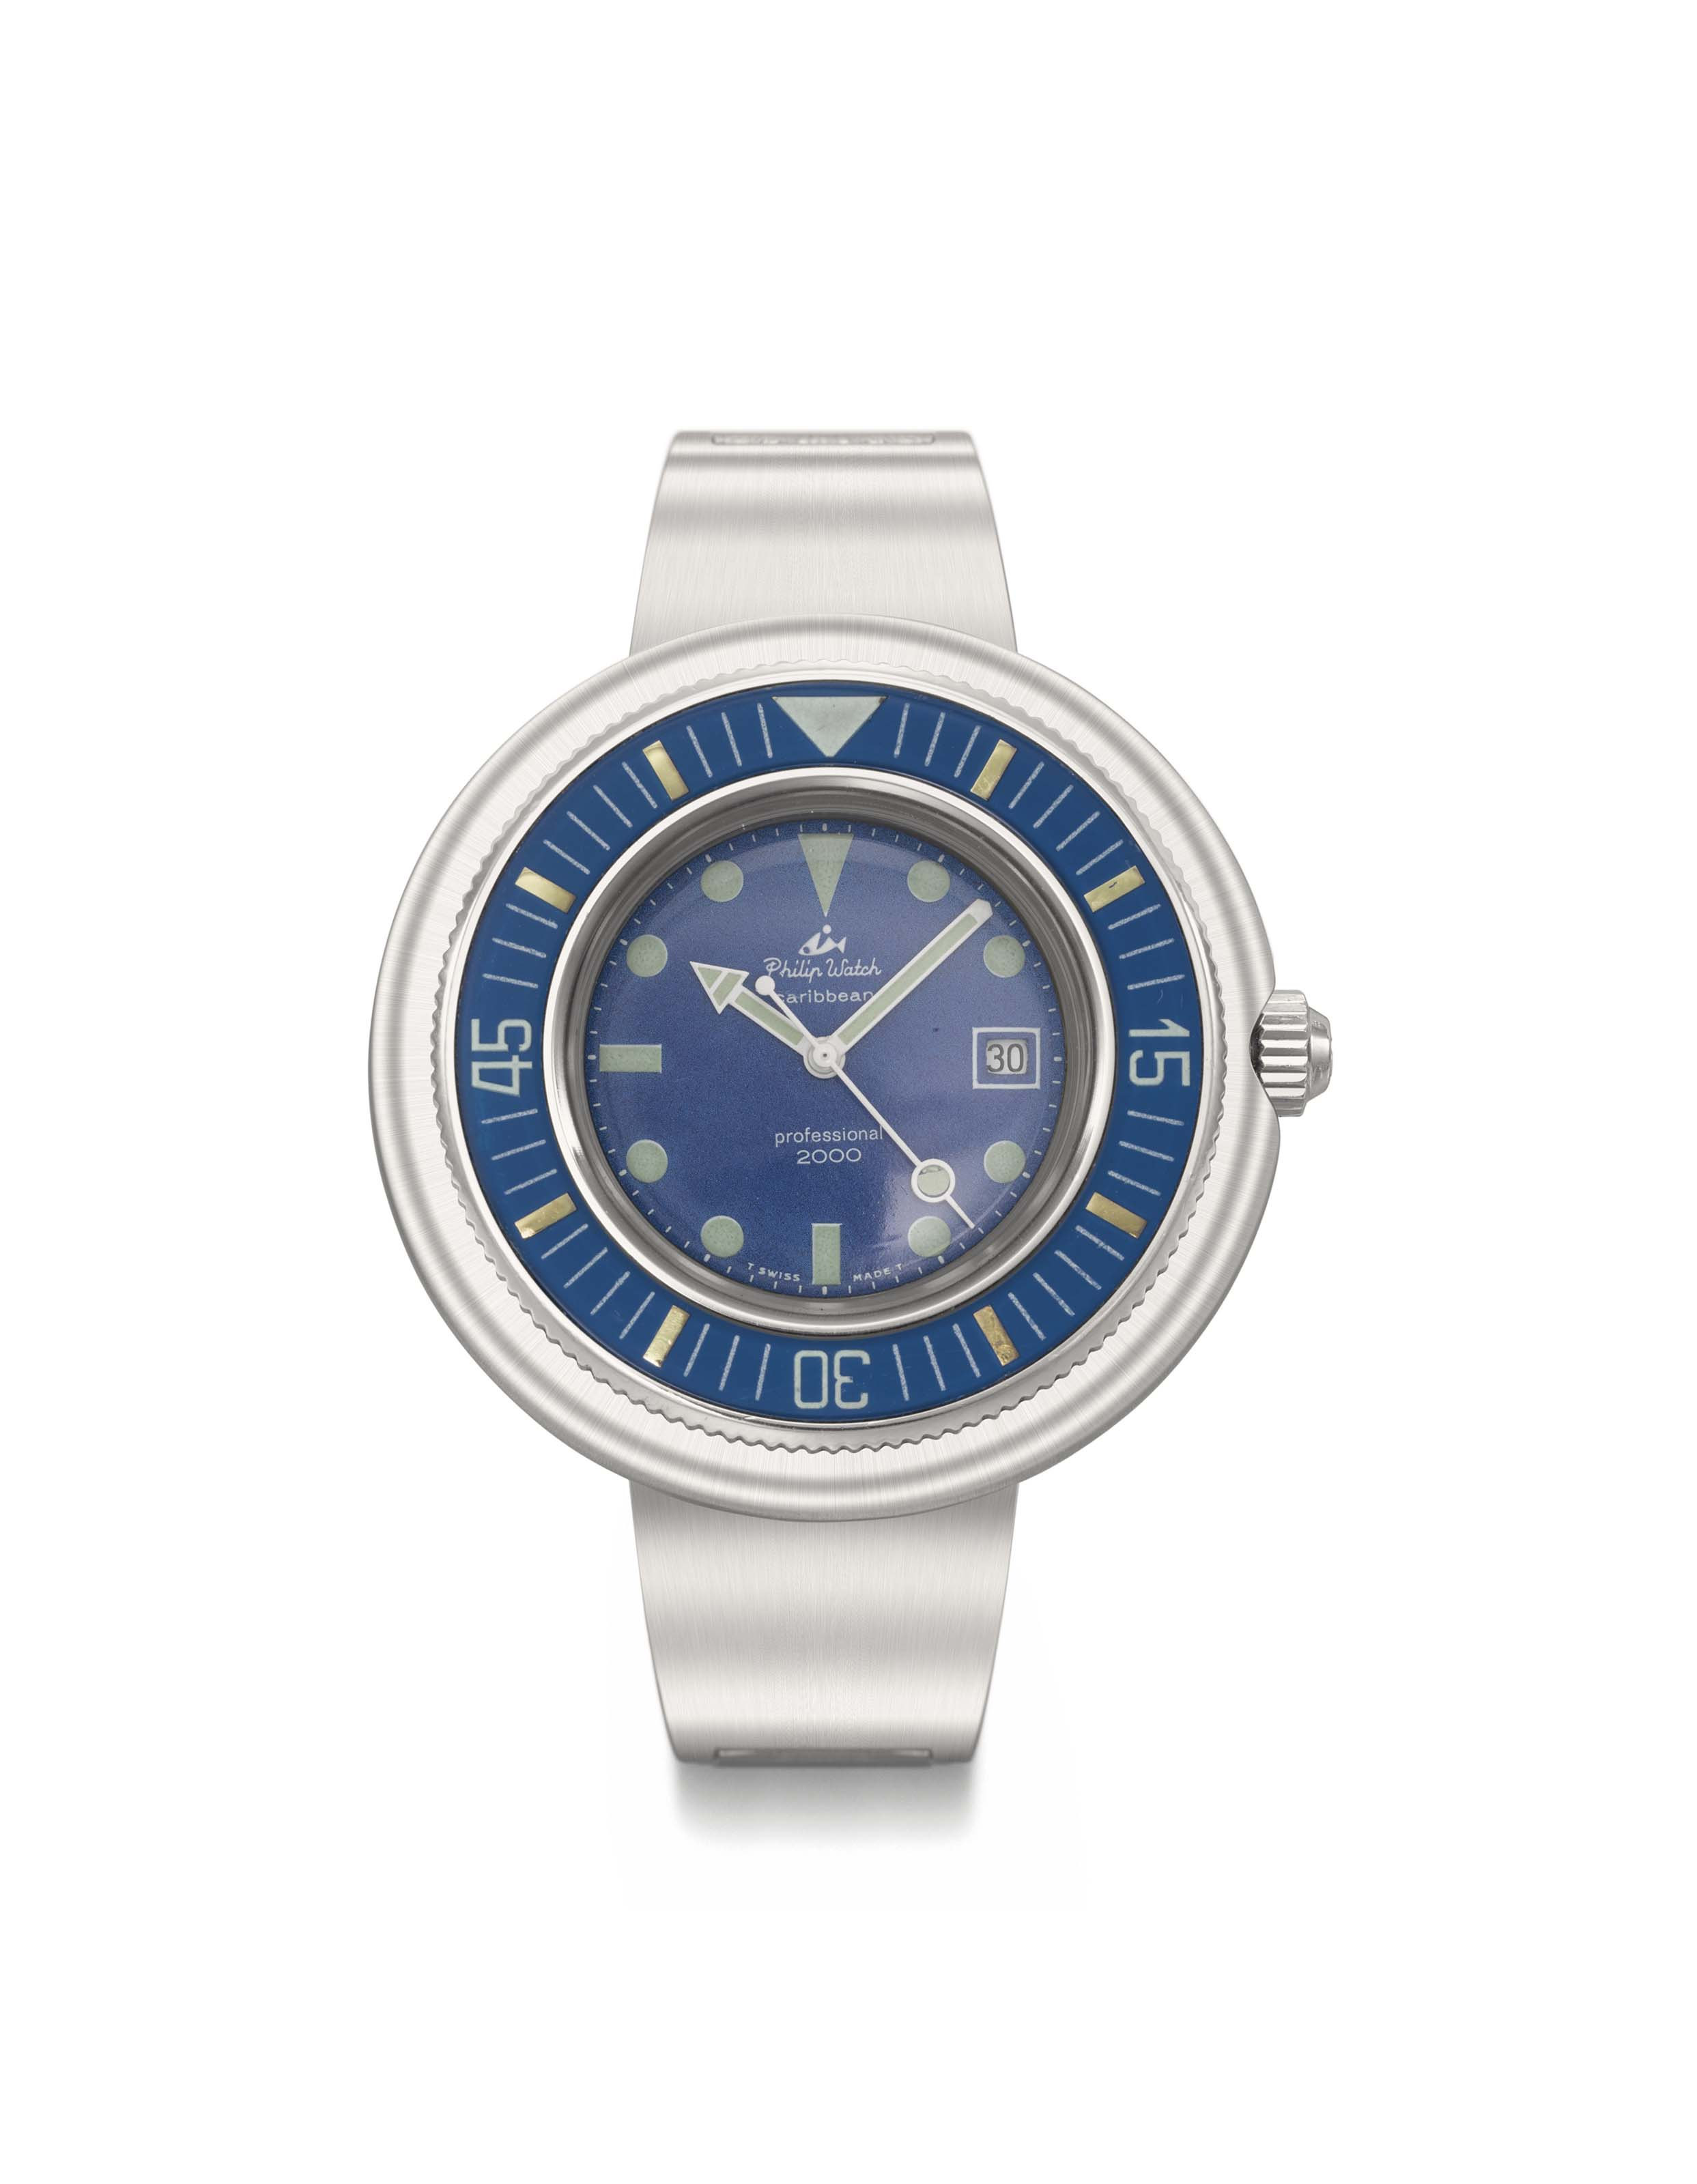 Philip Watch. A fine and oversized automatic diver's wristwatch with sweep centre seconds and date